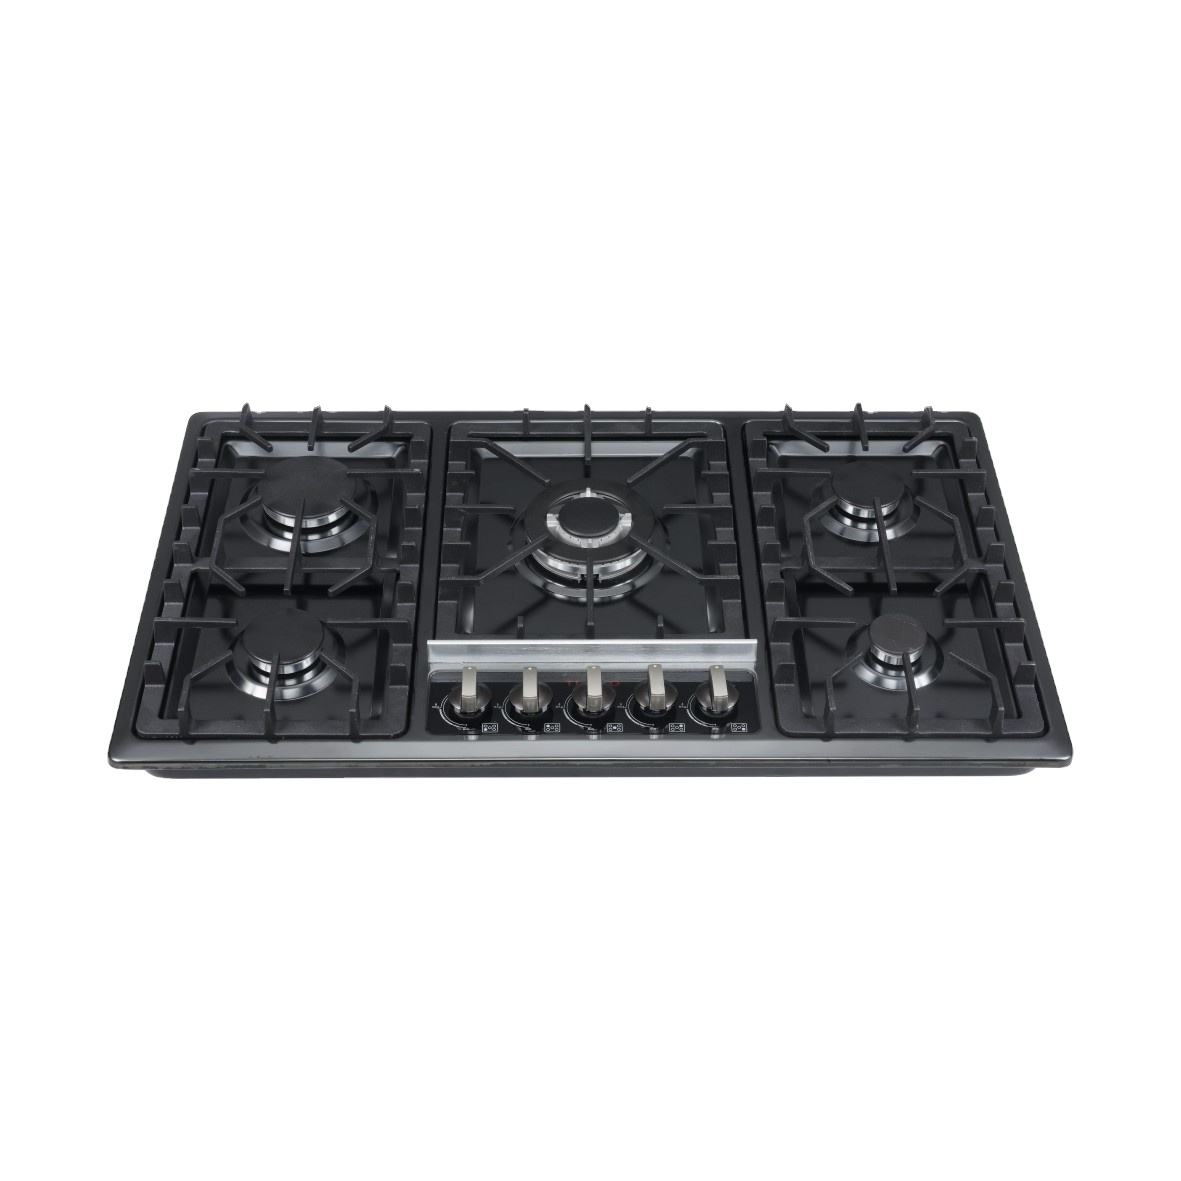 2020 Hot sale cooking indian gas stove